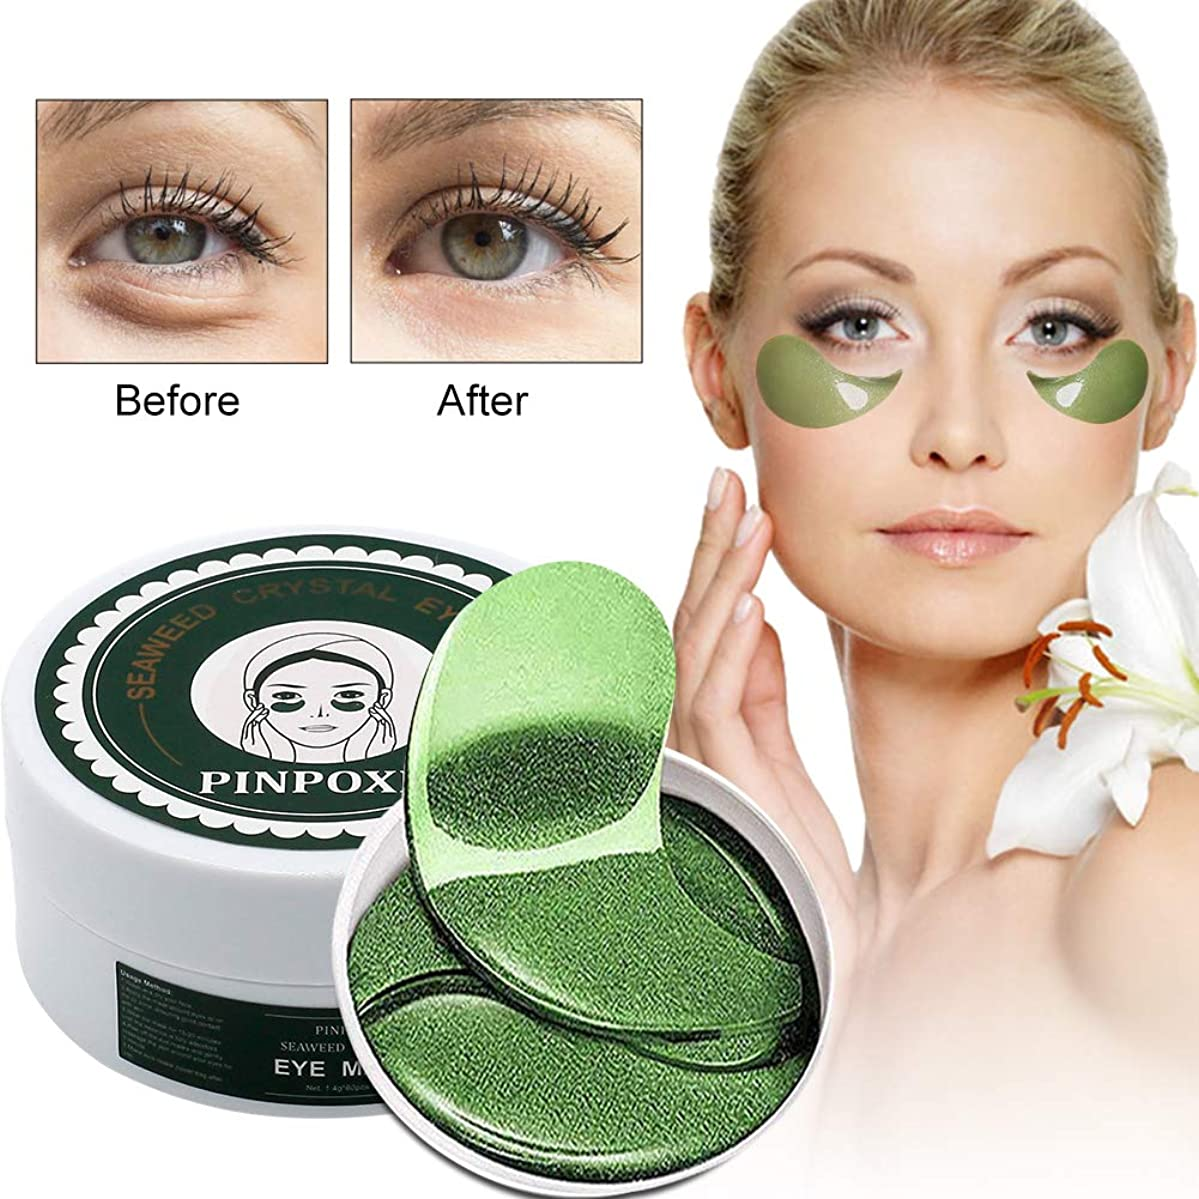 Under?Eye?Pads,?Collagen?Eye?Mask,?Eye?Treatment?Mask,?Puffy?Eyes,?Eye?Patches?,?Dark?Circles?and?Puffiness(30?Pairs)